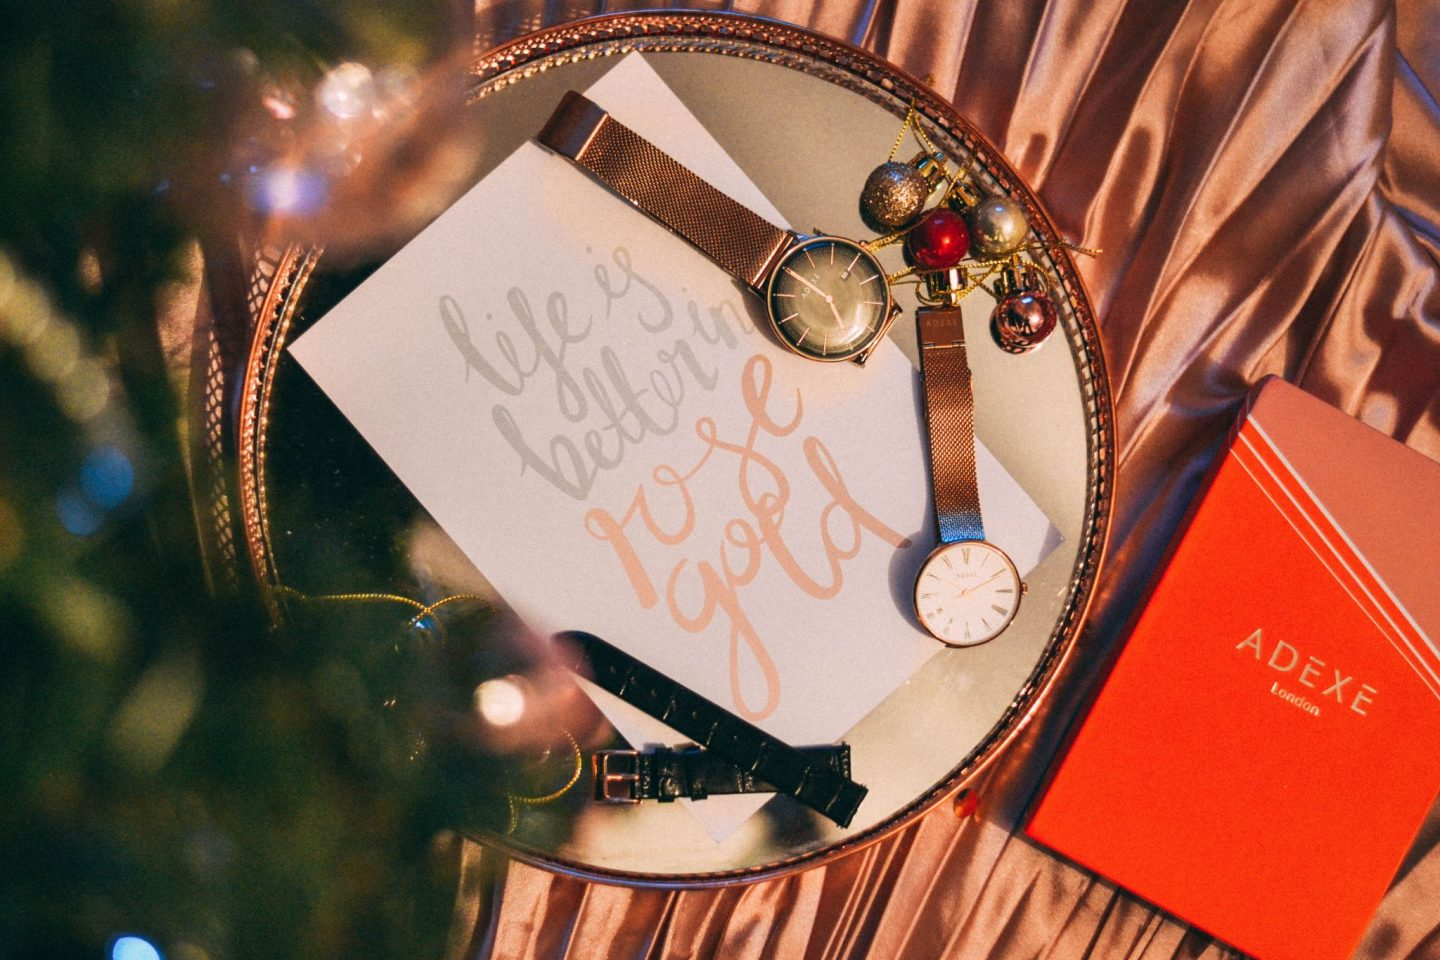 Timeless gifts with Adexe London